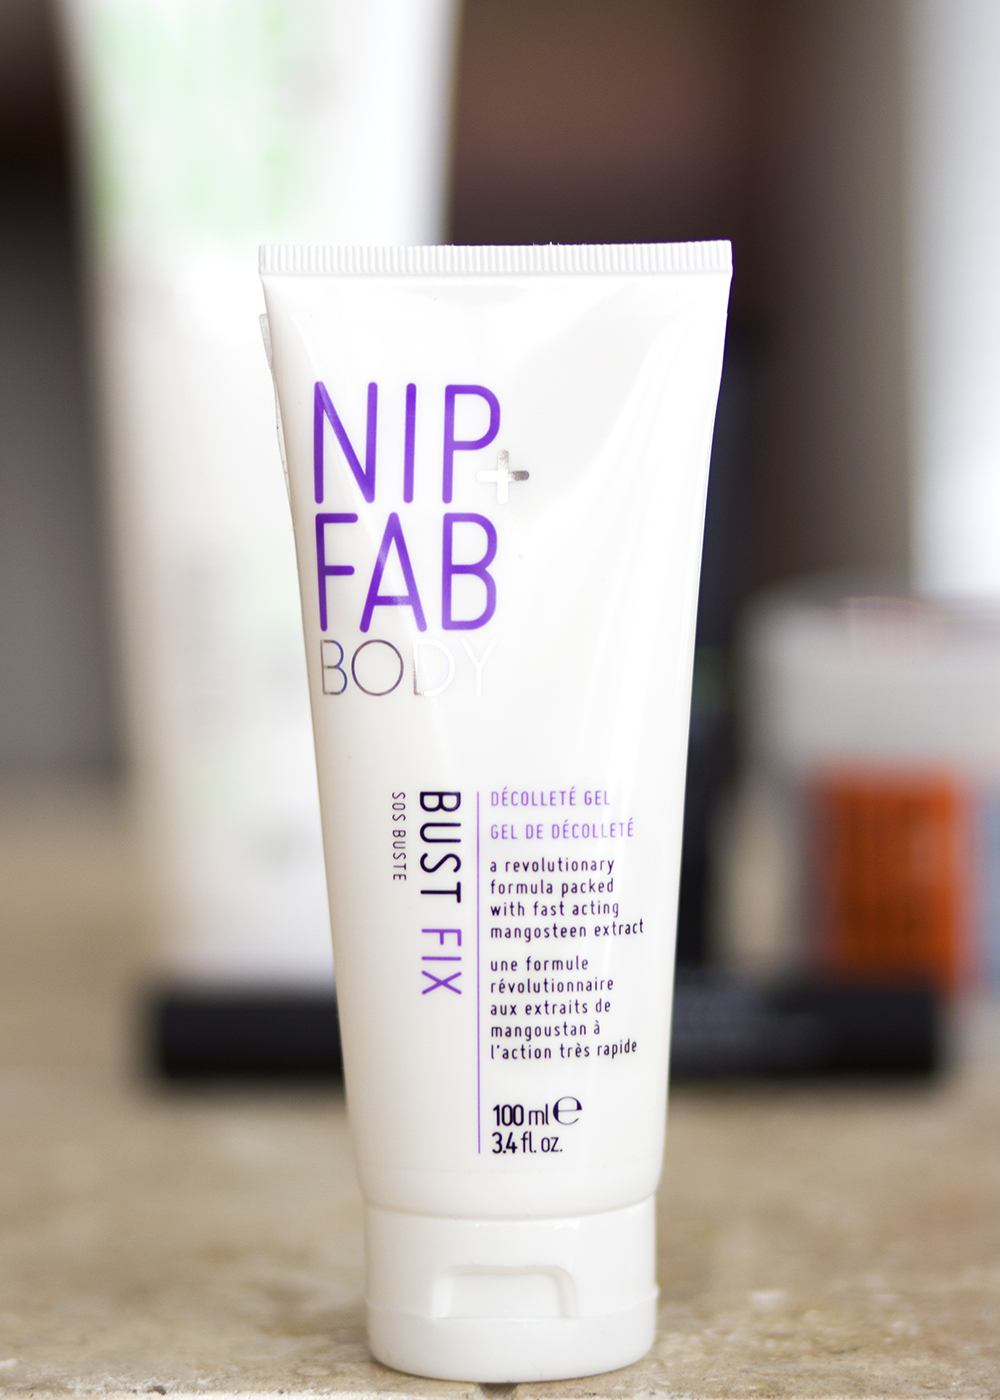 Rodial and Nip + Fab Beauty - Nip + Fab Body Bust Fix Décolleté Gel - Rodial Nip Fab Beauty Review